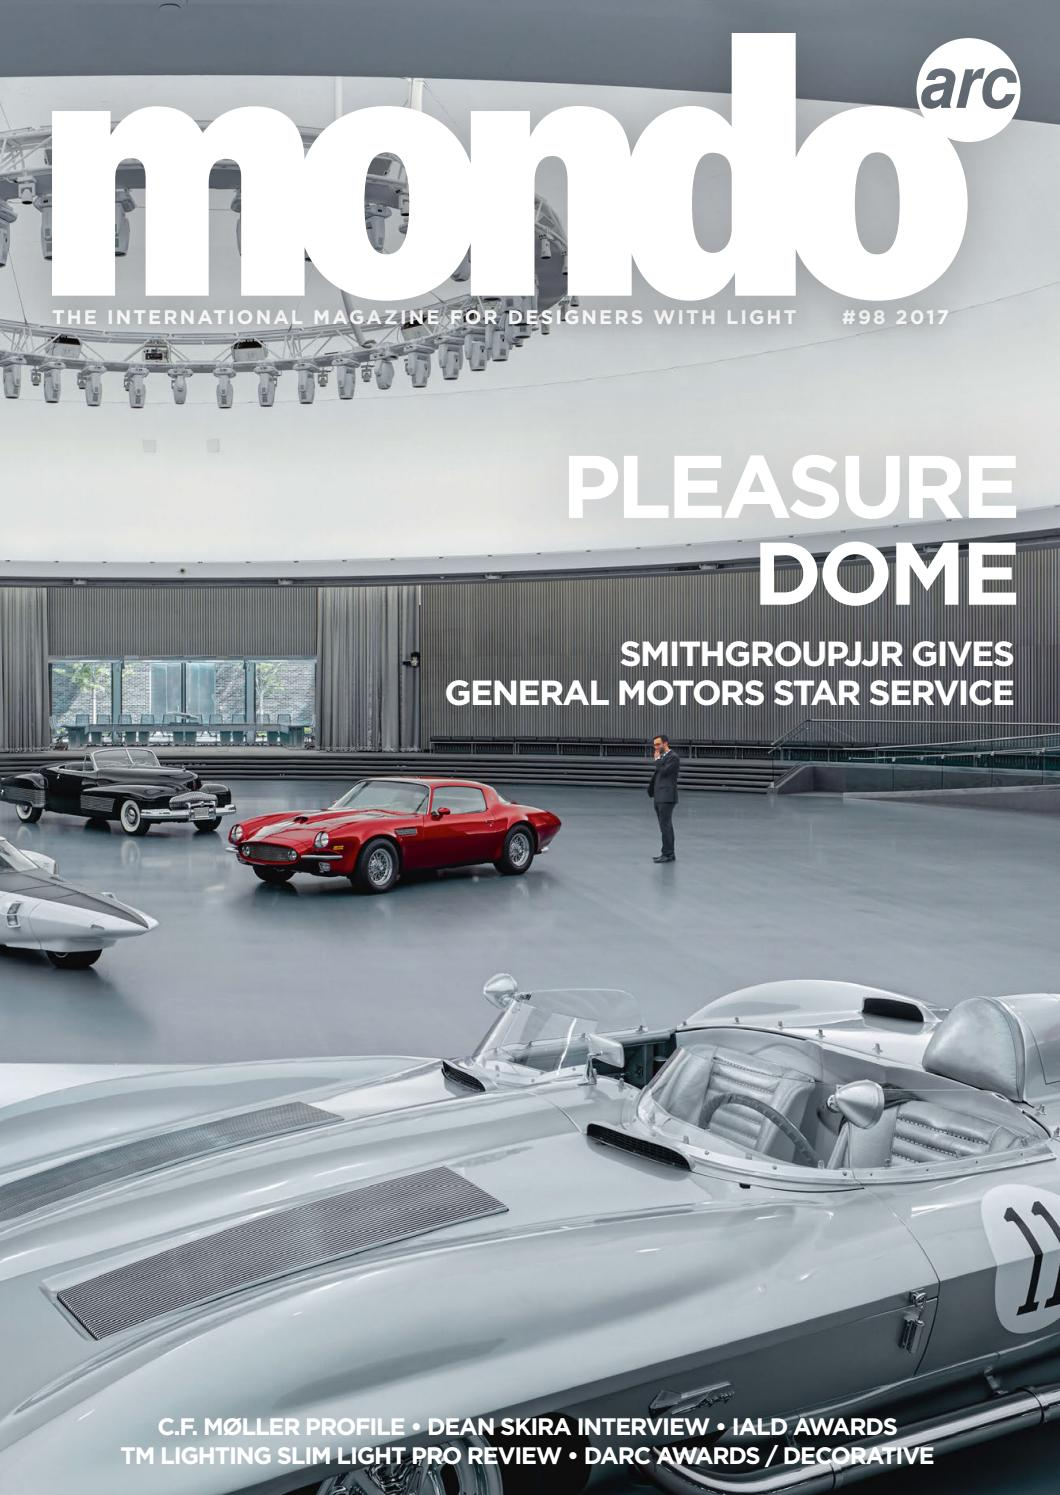 Mondoarc Jun Jul 2017 Issue 98 By Mondiale Publishing Issuu Help On Wiring A Drum Switch To Single Phase 230v Motor 2016 Car